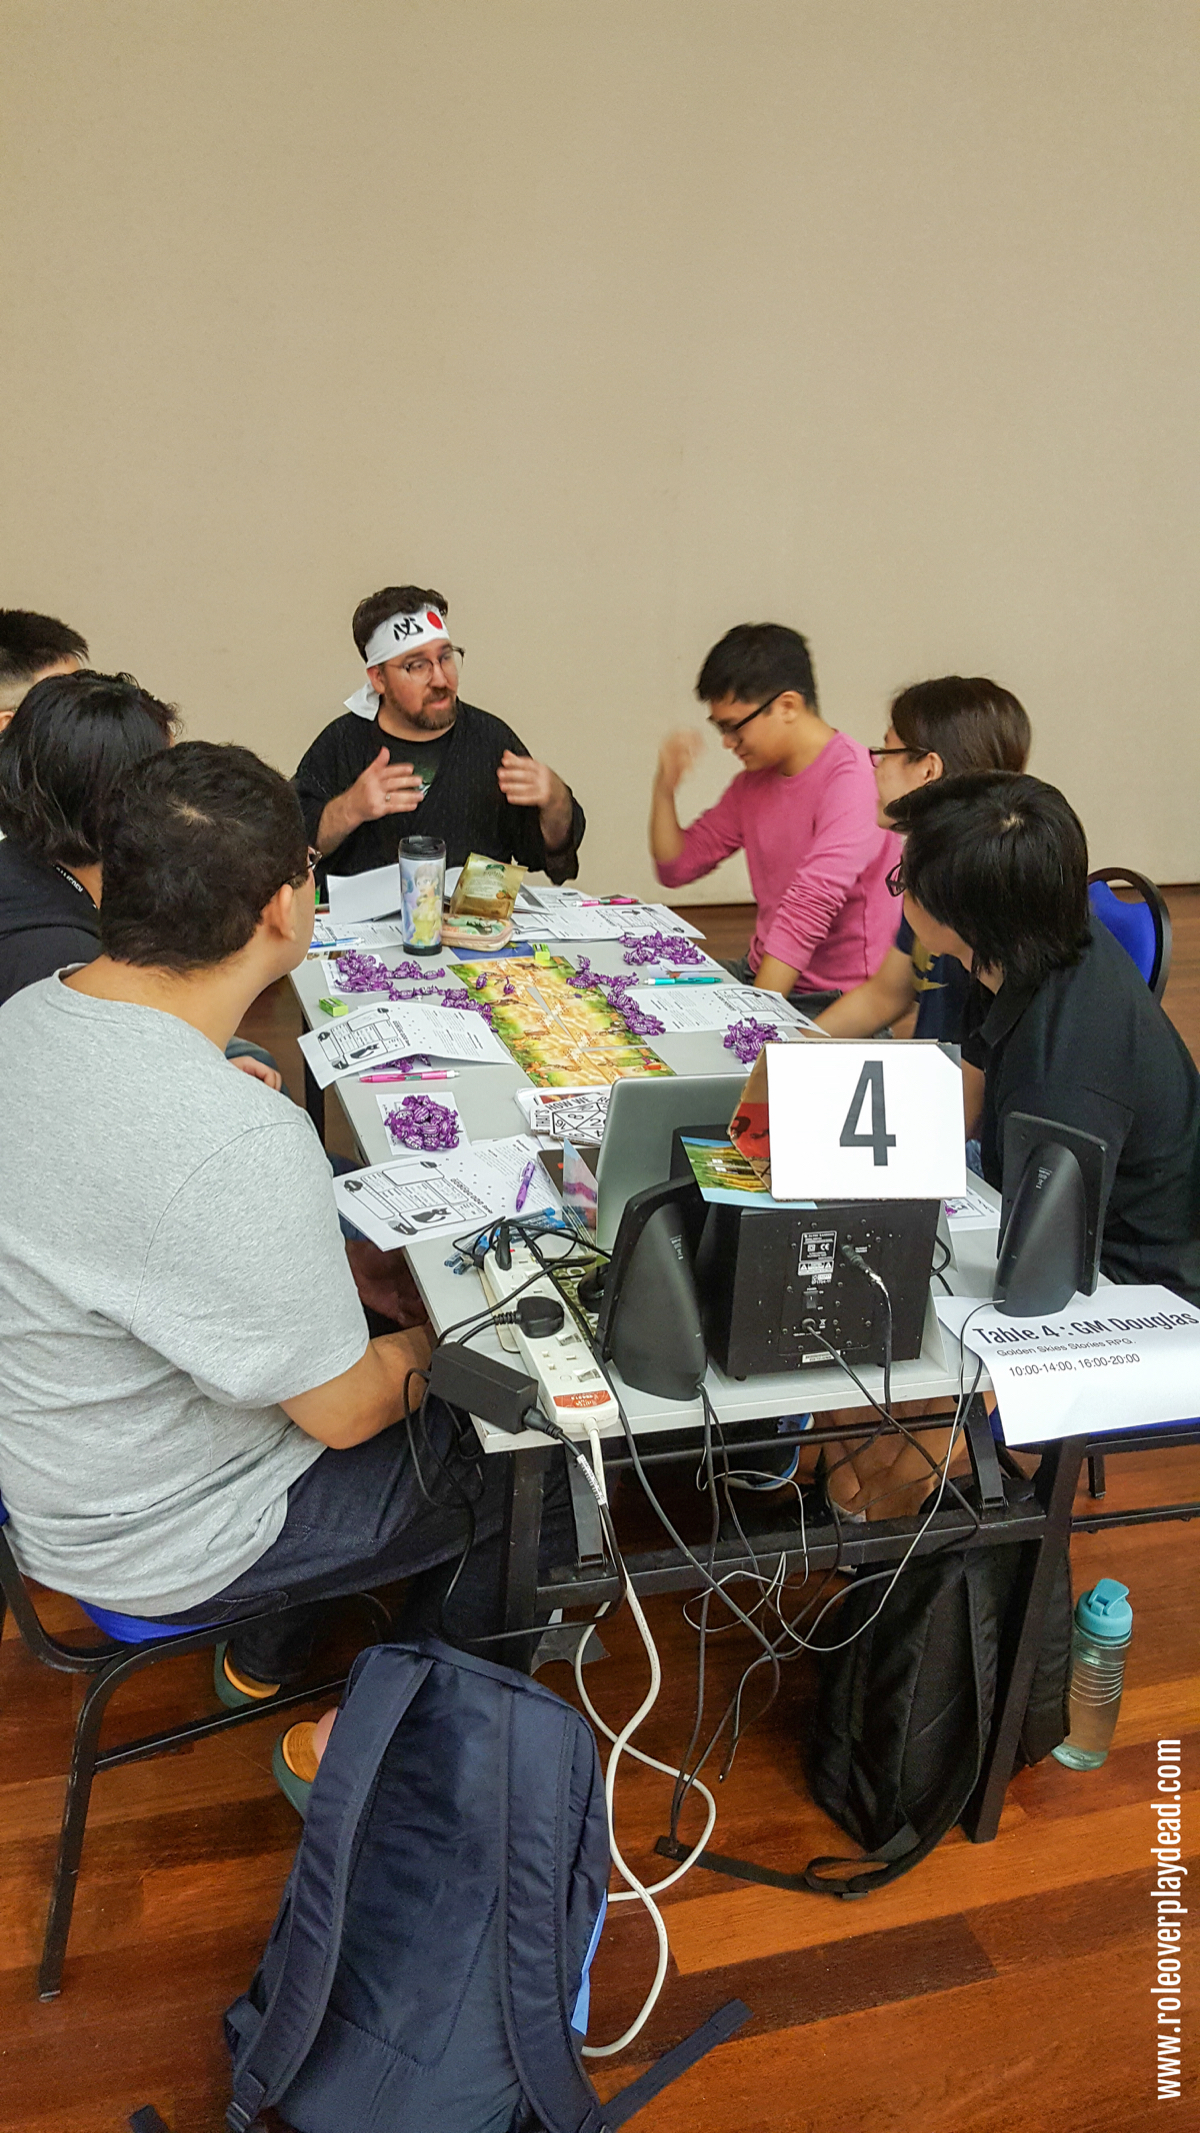 GM Doug running Golden Sky Stories RPG sessions at Kaijucon 2018.